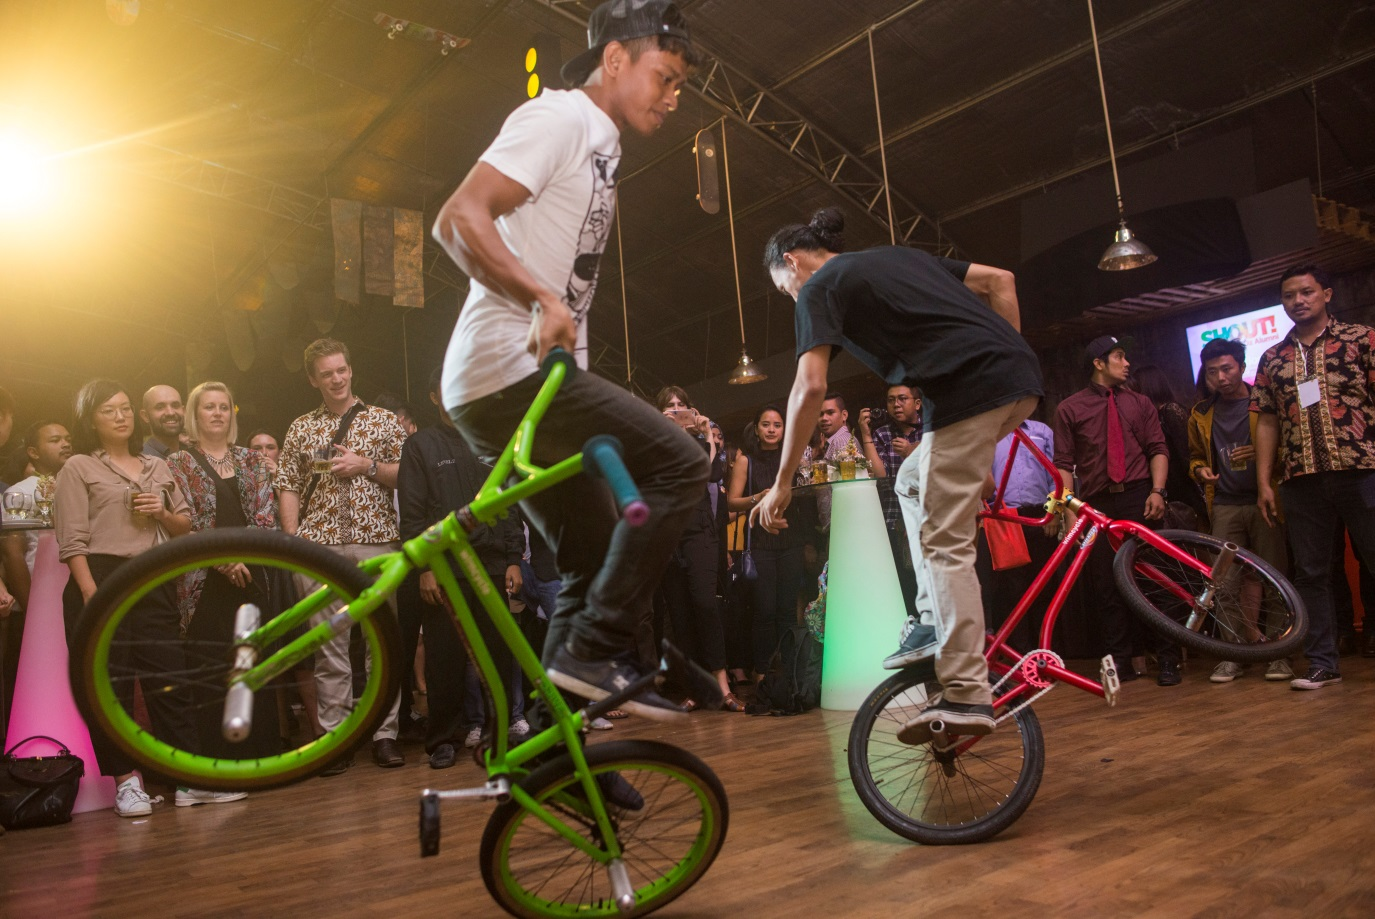 BMX demonstration at SHOUT! The Voice of Oz Alumni on 19 August 2016 in Jakarta.